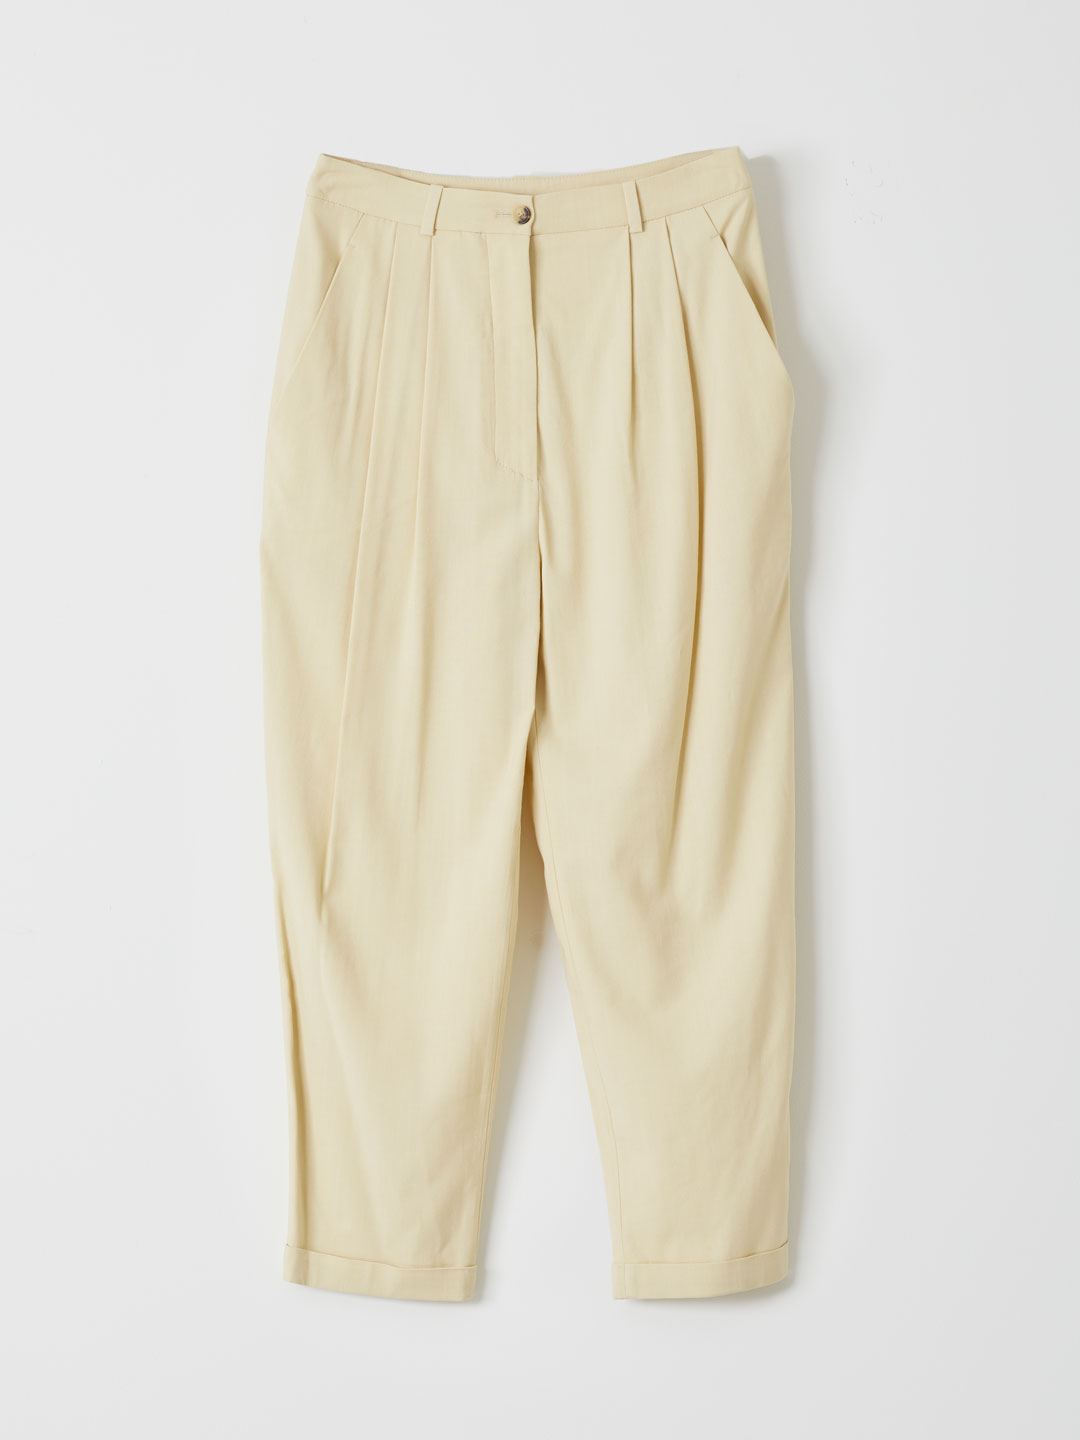 Viscose Wool Tucked Pants - Beige